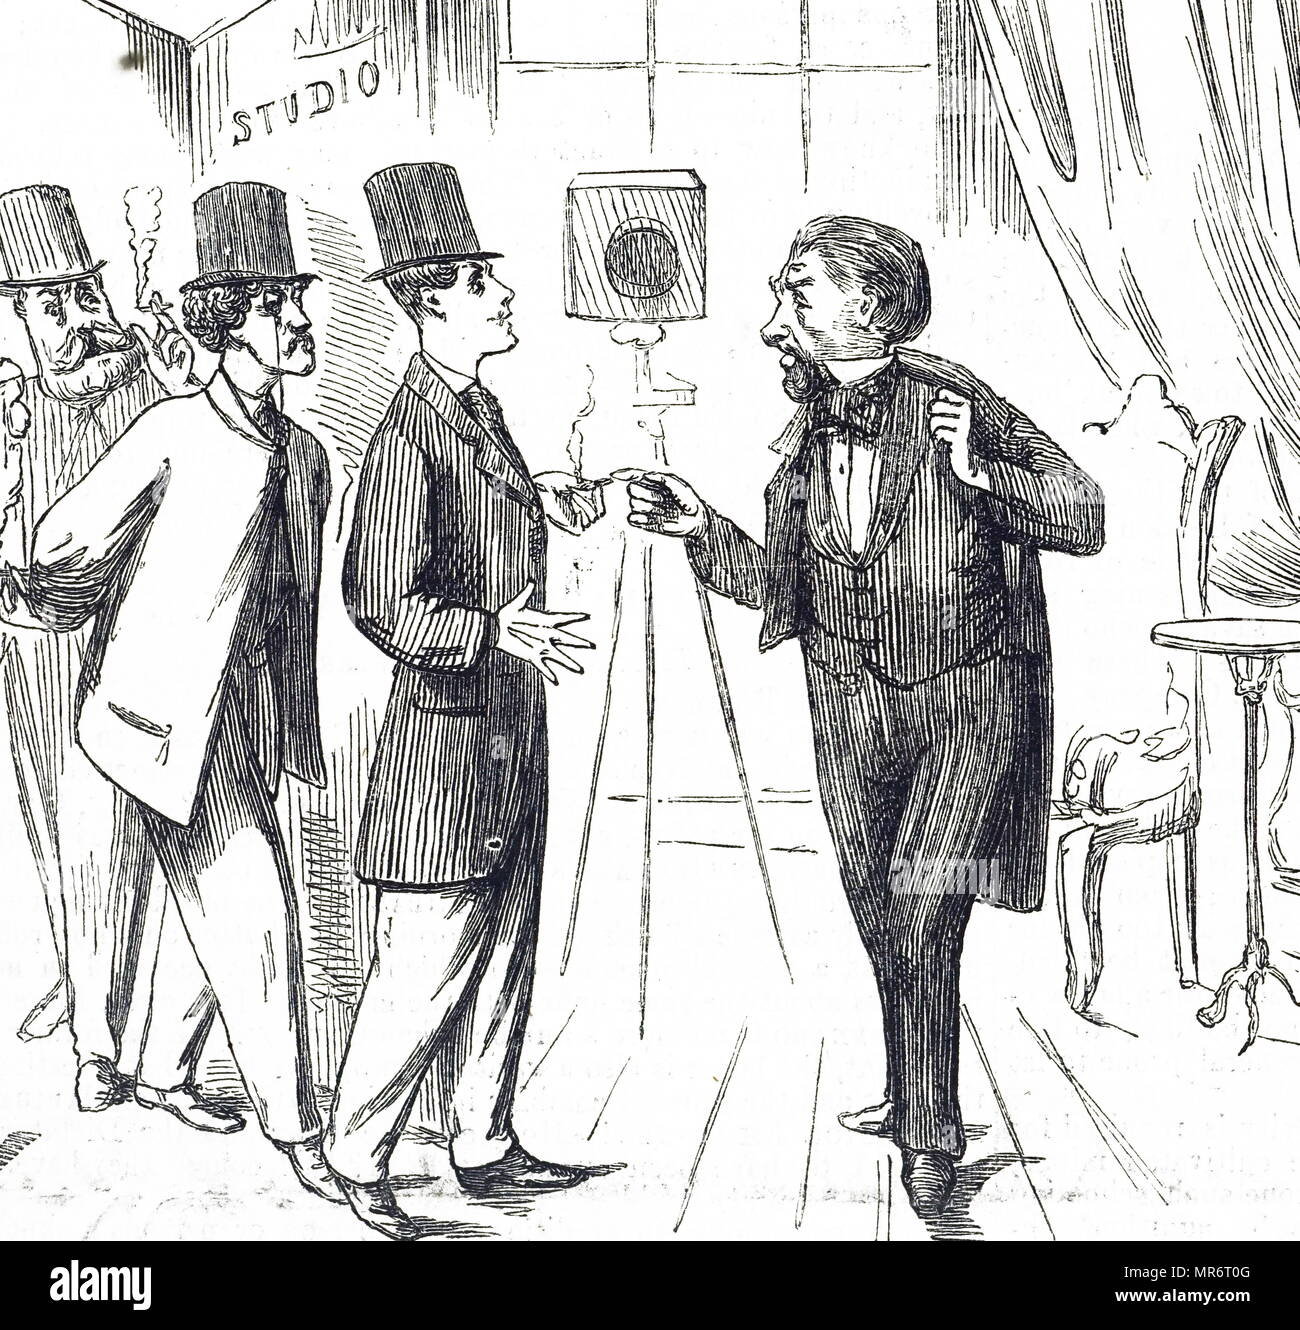 Cartoon depicting men queuing to have their photographic portraits taken. Dated 19th century - Stock Image